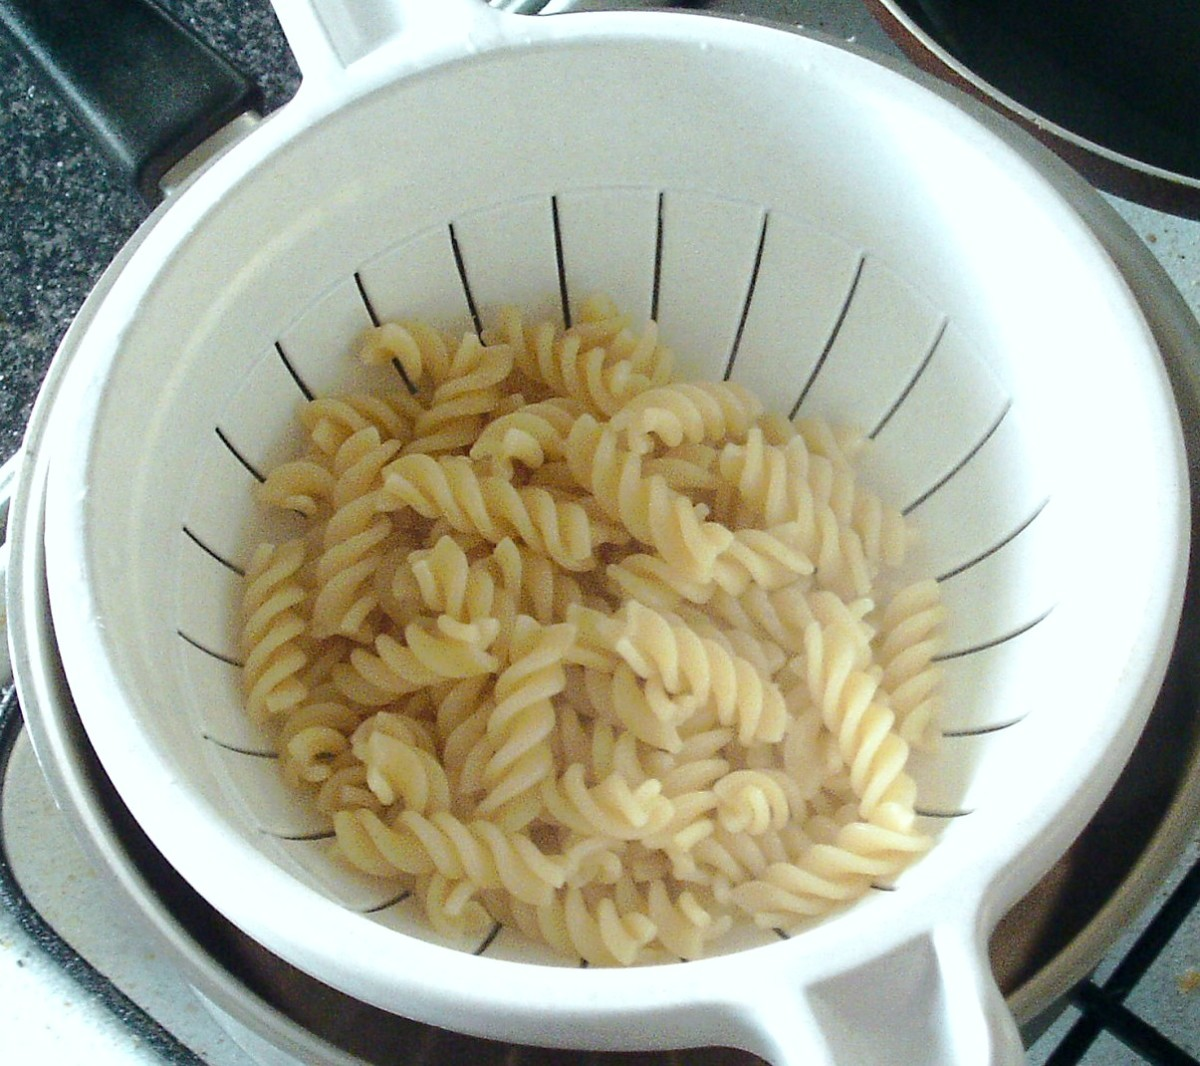 Fusilli pasta is drained